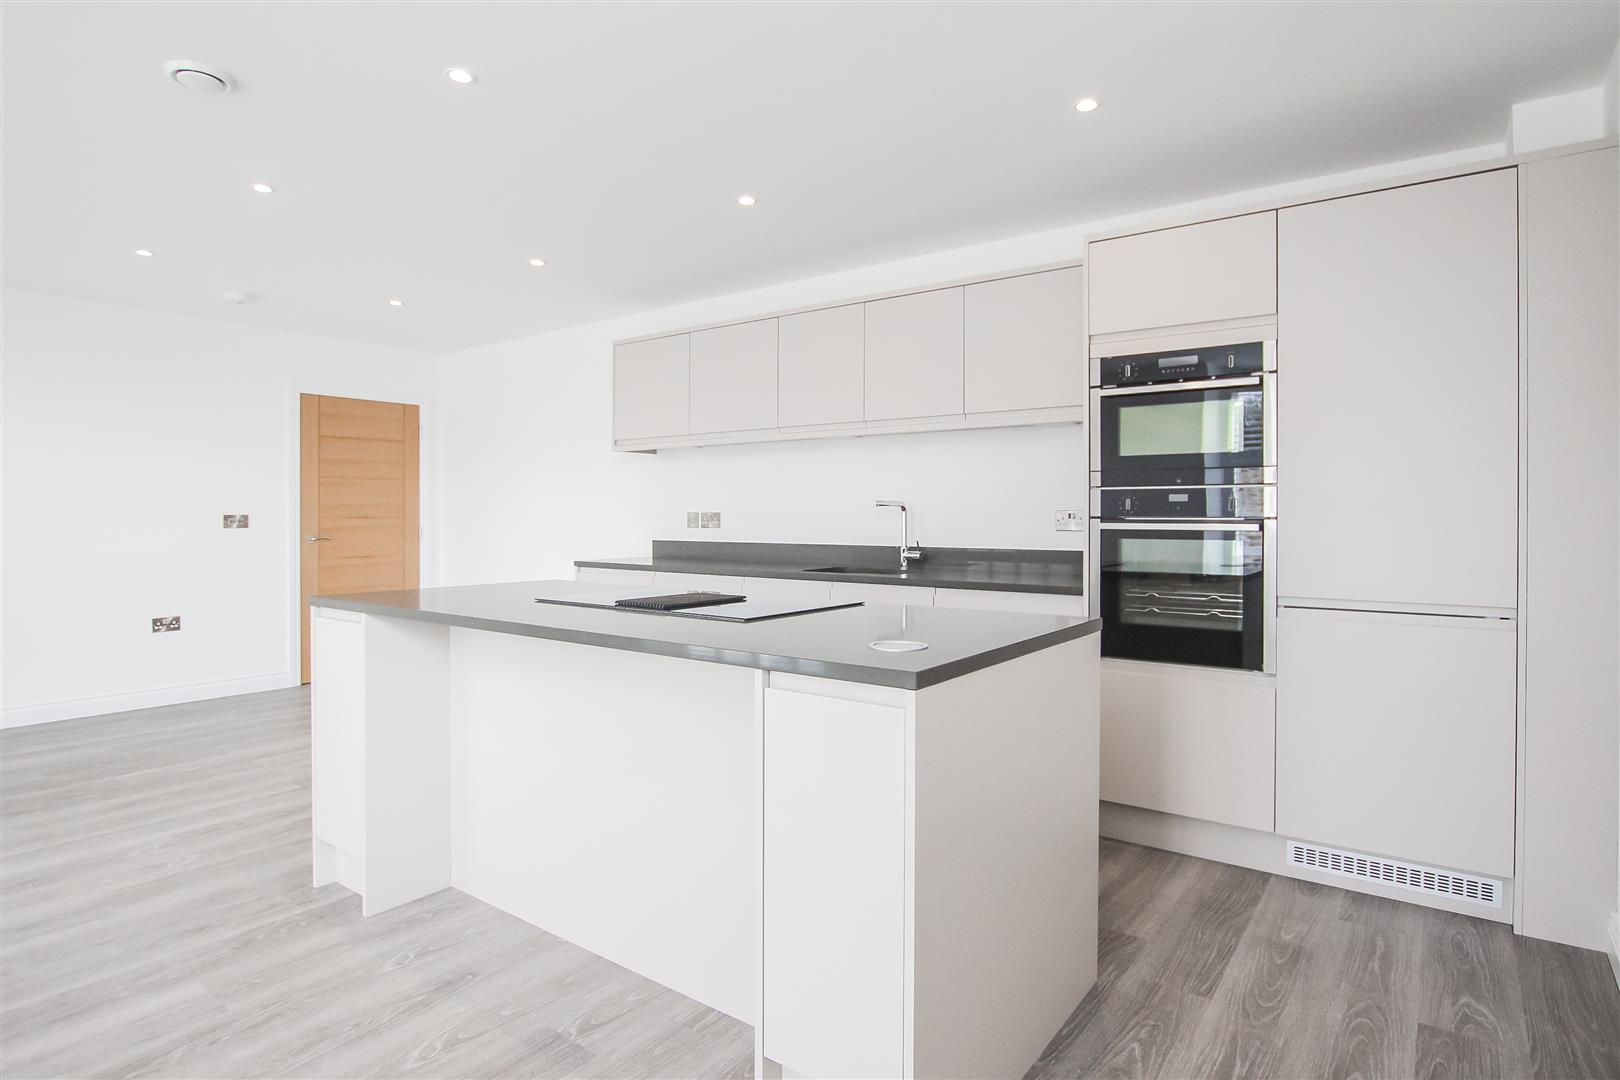 2 Bedroom Apartment For Sale - Image 4